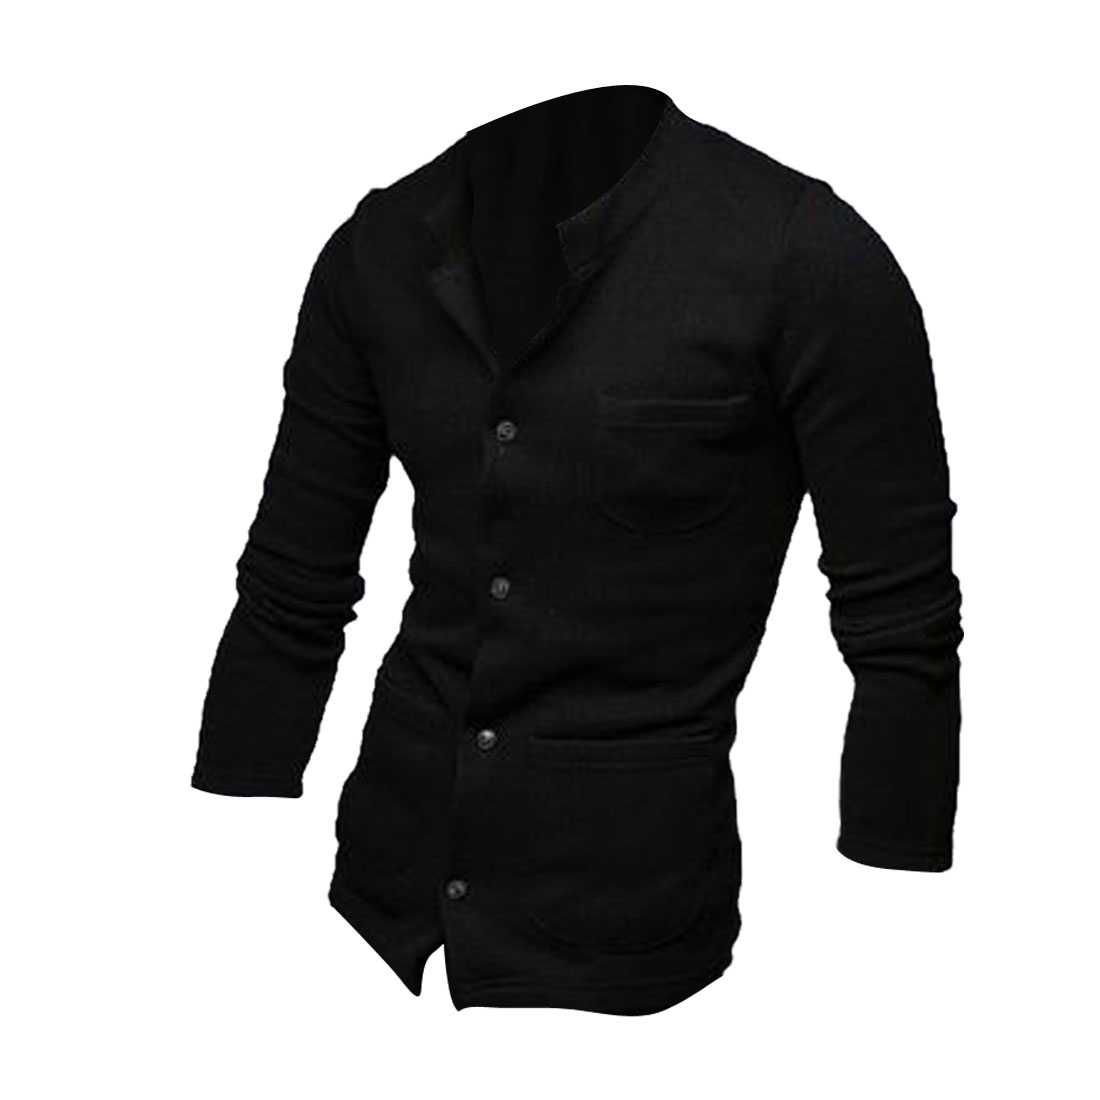 Men Button Up Long Sleeve Stretchy Warm Coat Black M